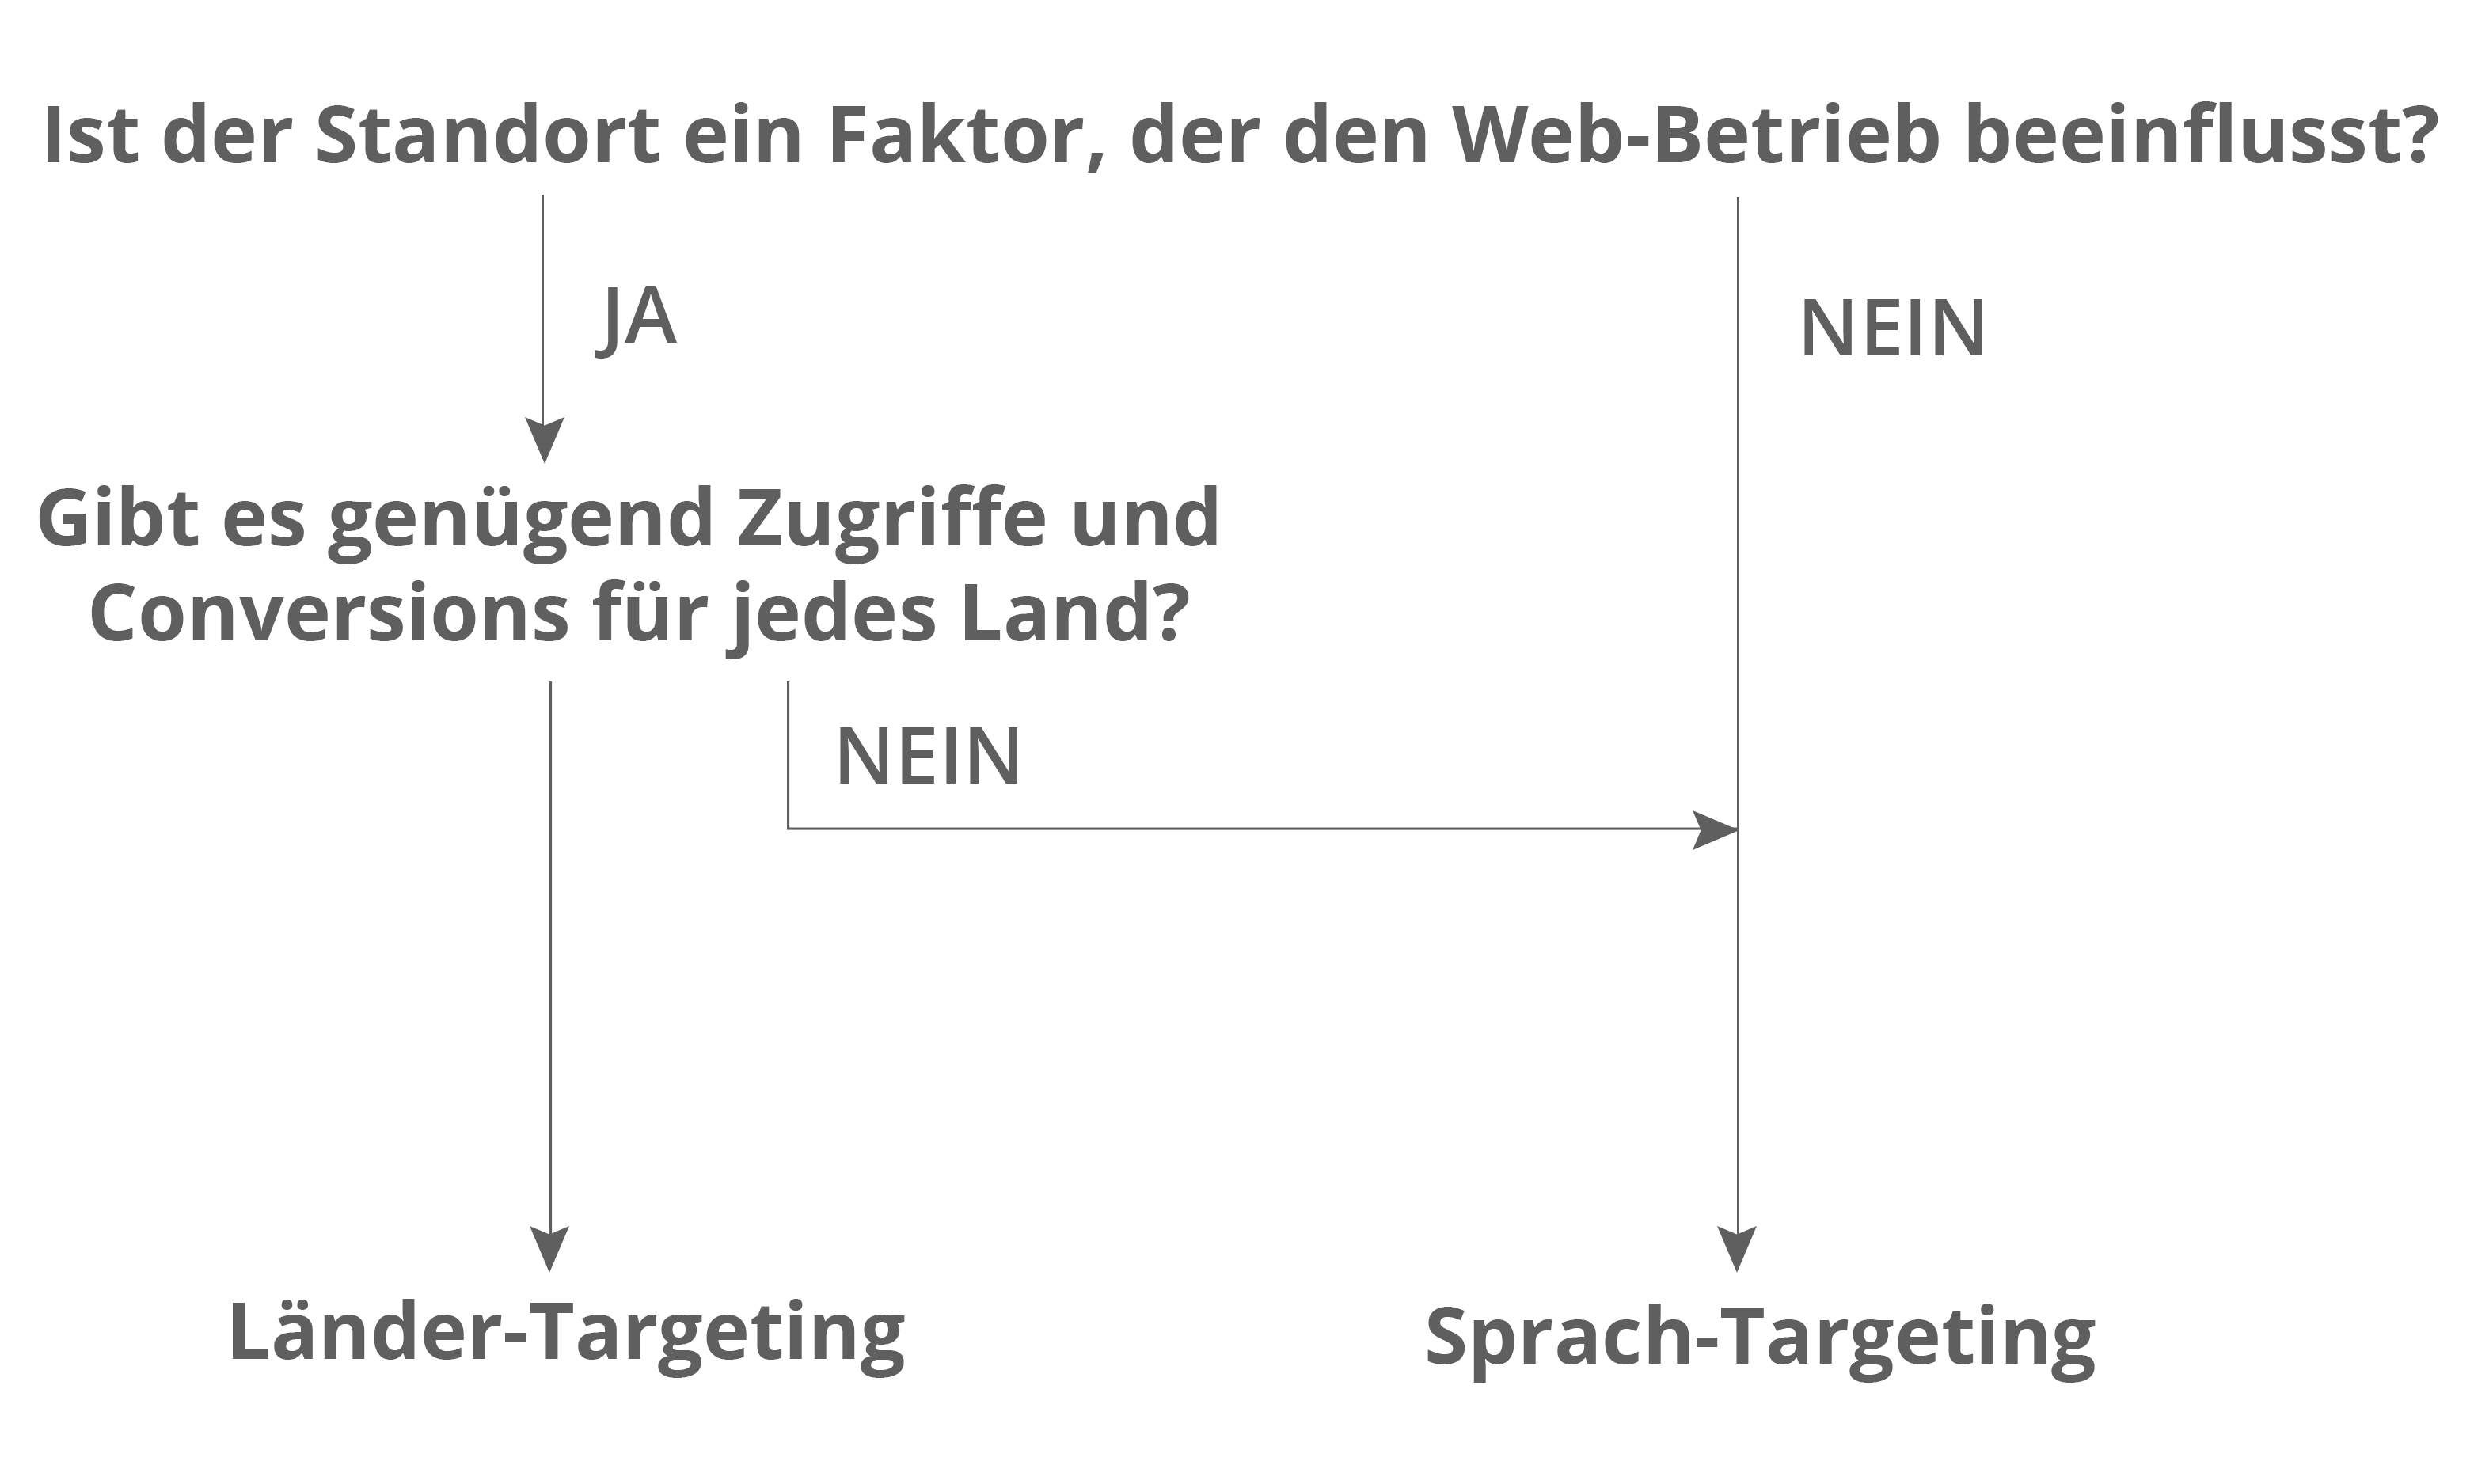 Internationales Targeting: Länder- oder Sprach-Targeting